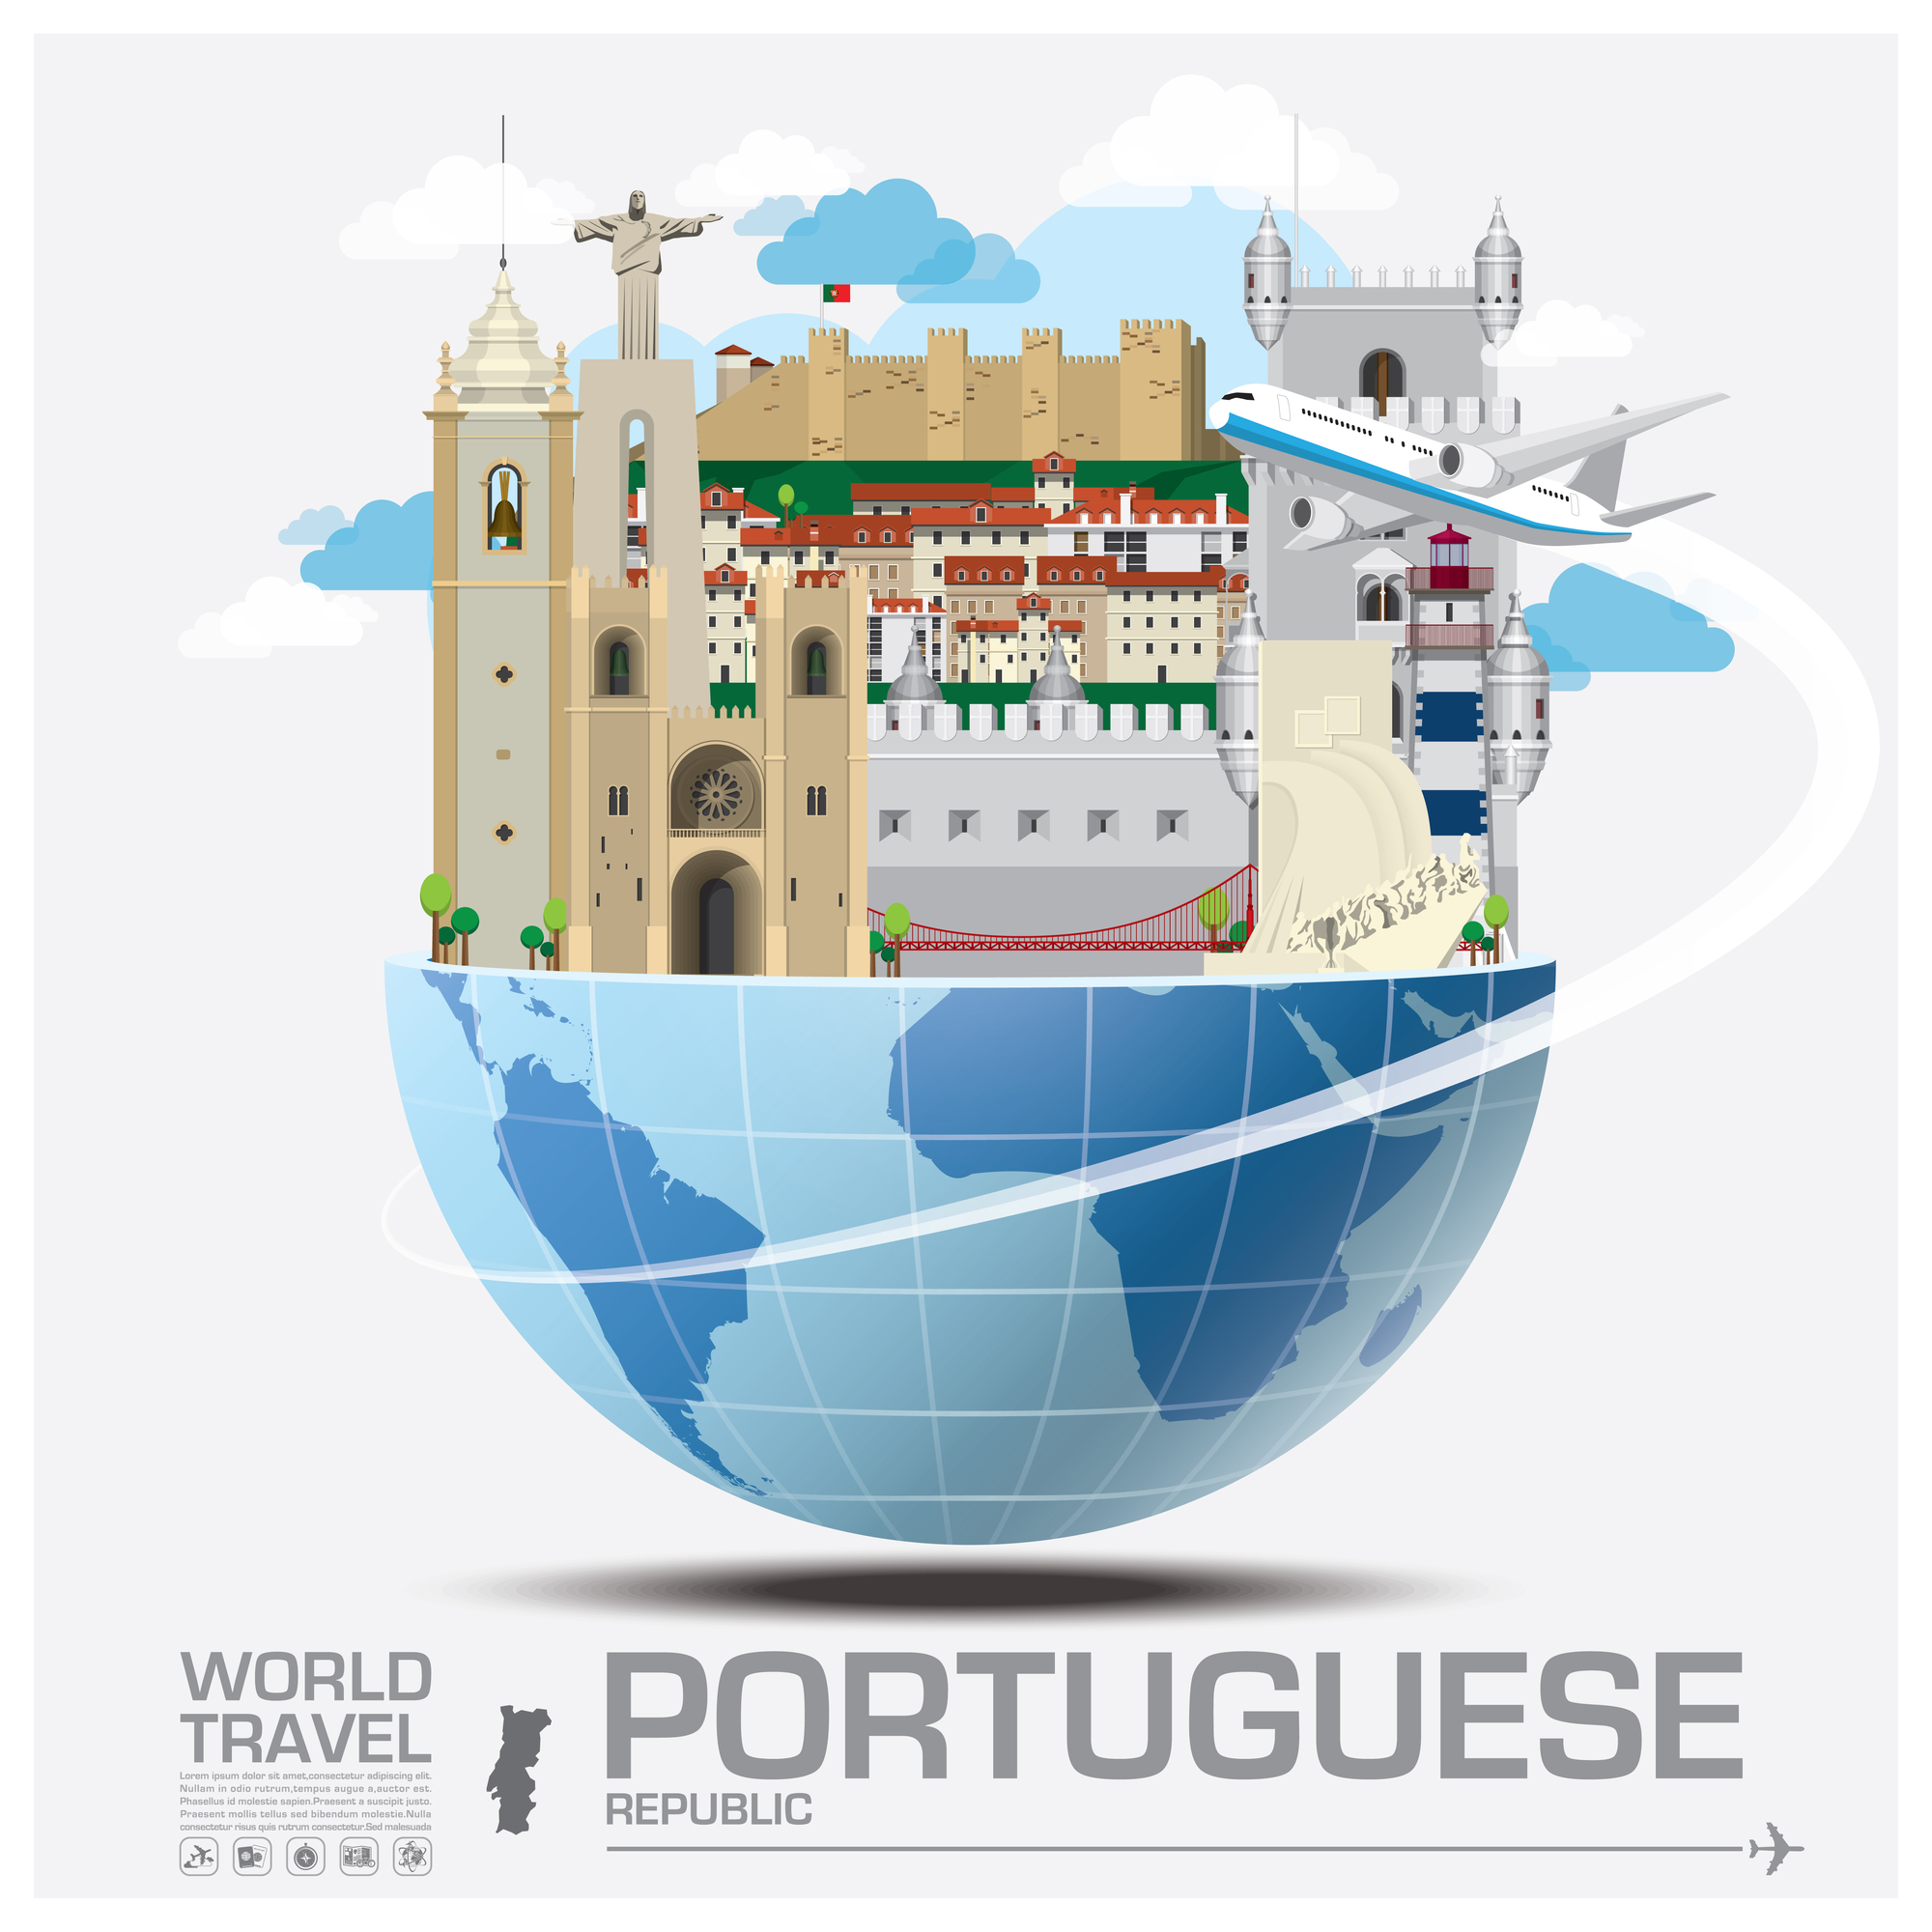 portugal residency alepietrocola - The best place in EU for a second residency for foreigners is Portugal